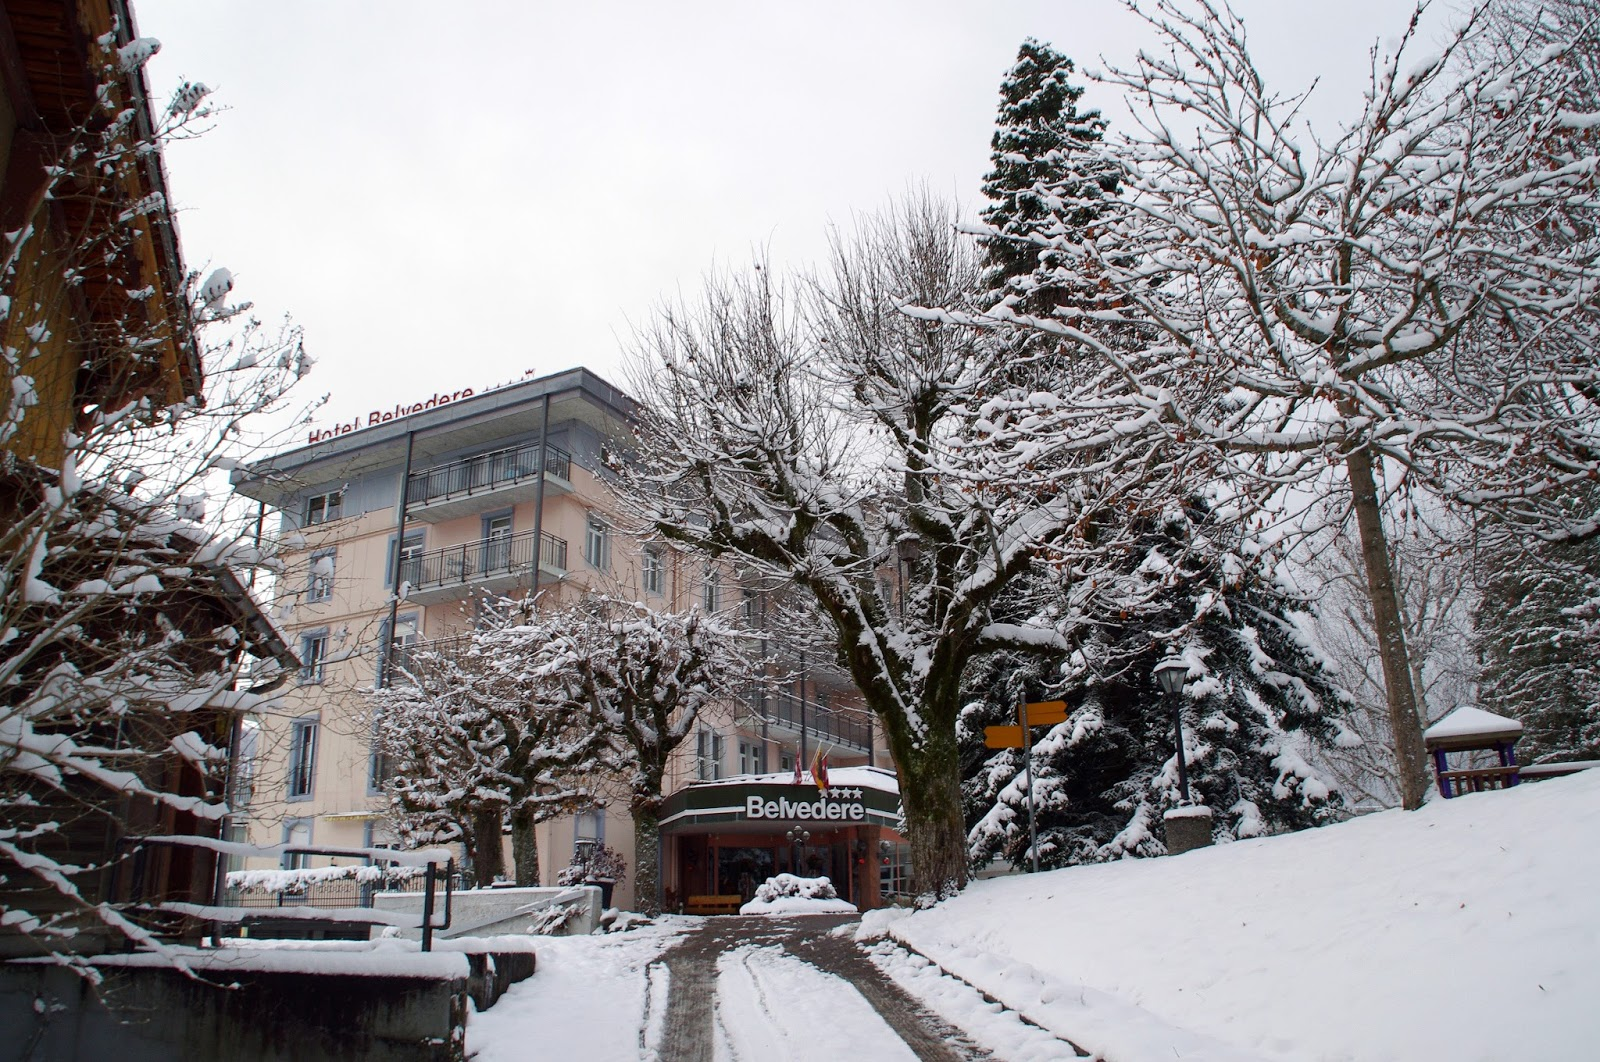 Hotel Belvedere Switzerland Winter